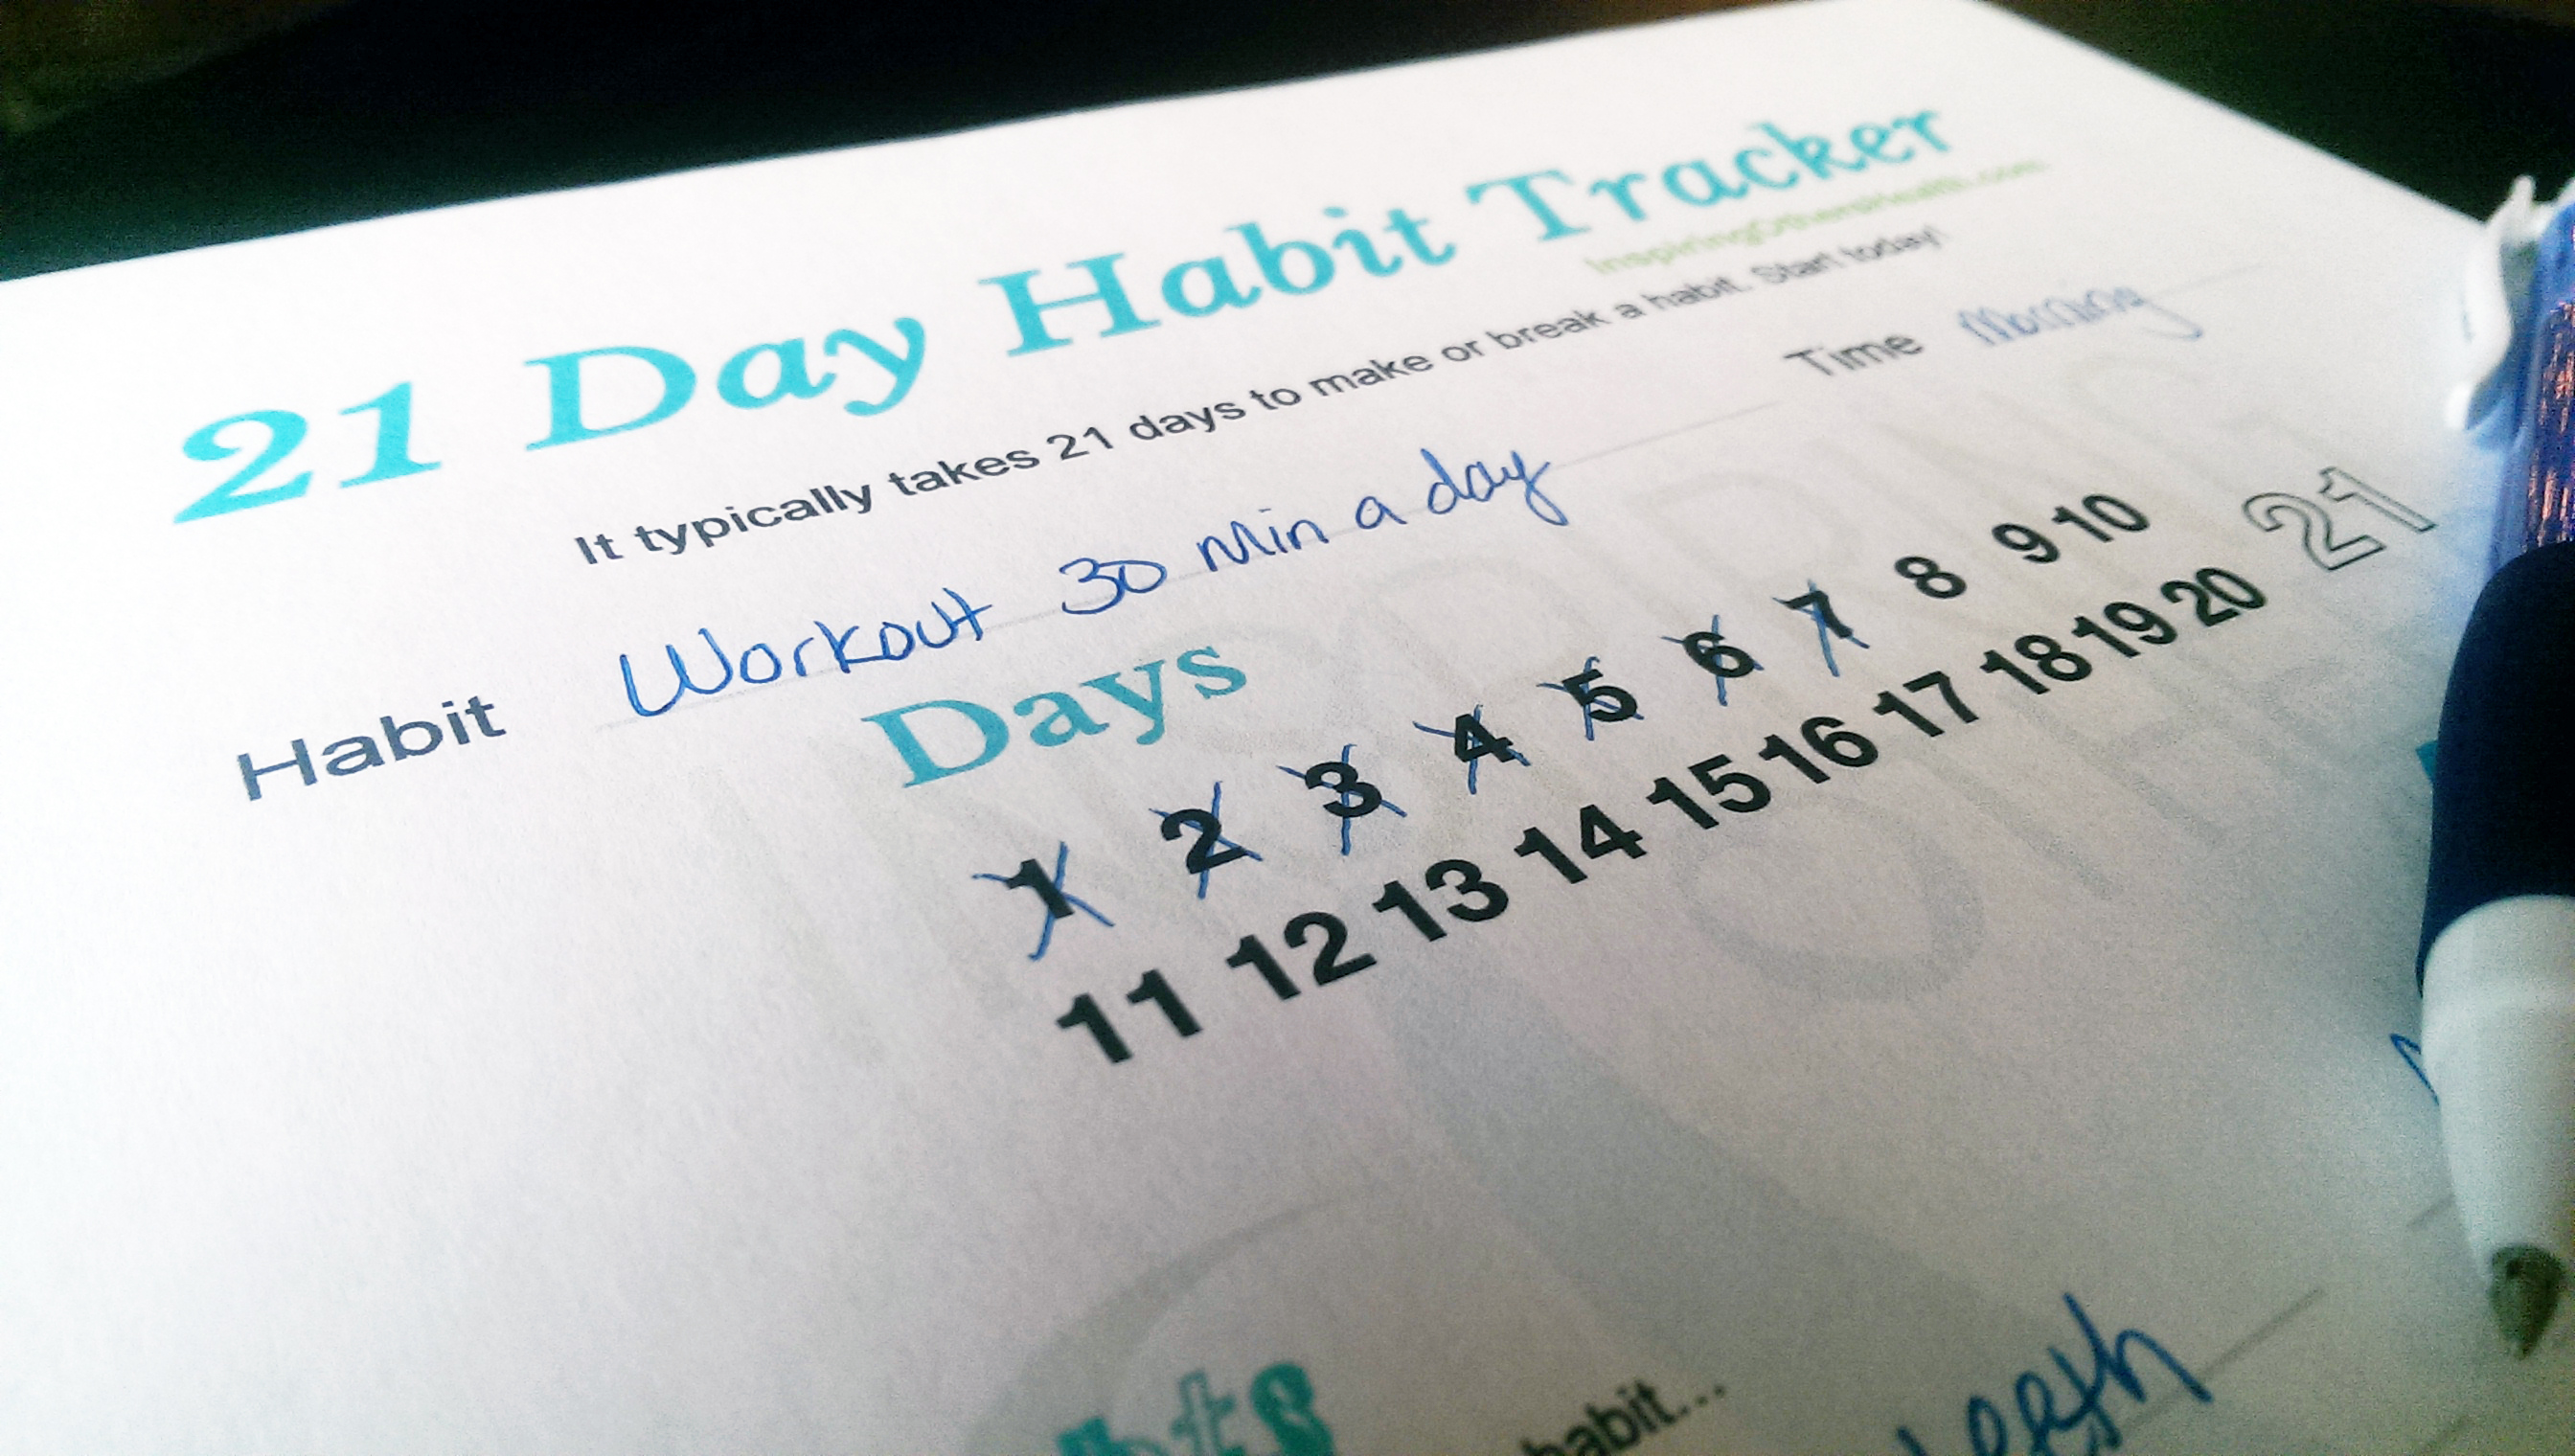 21 Day Habit Tracker